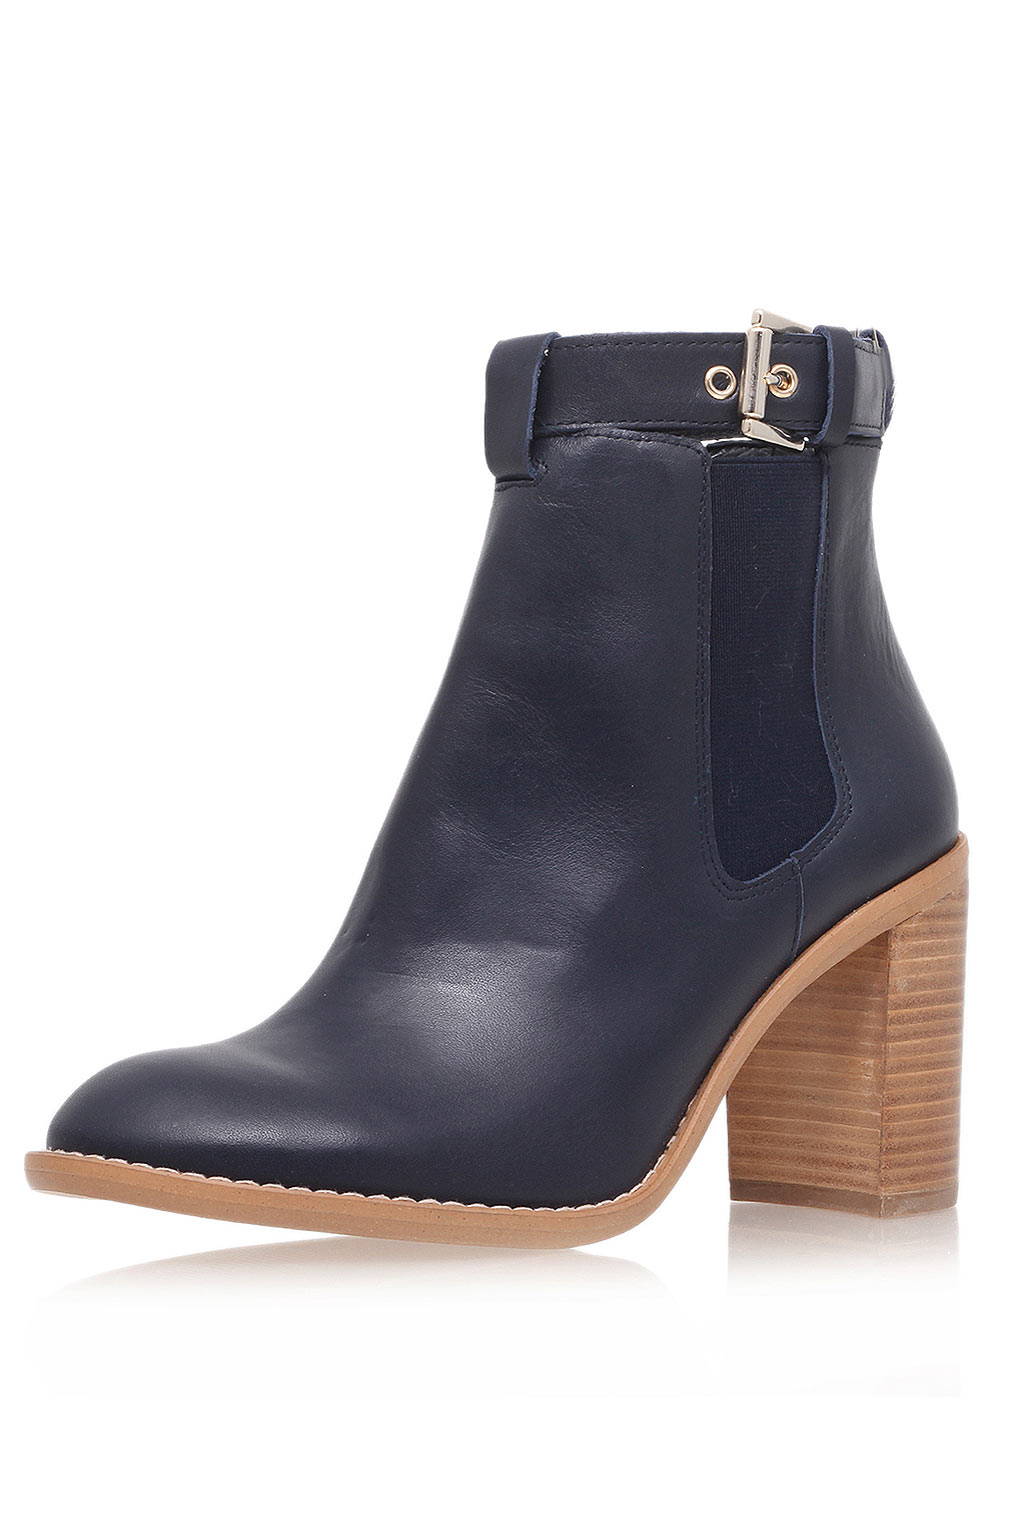 topshop high heeled leather ankle boots by kurt geiger in